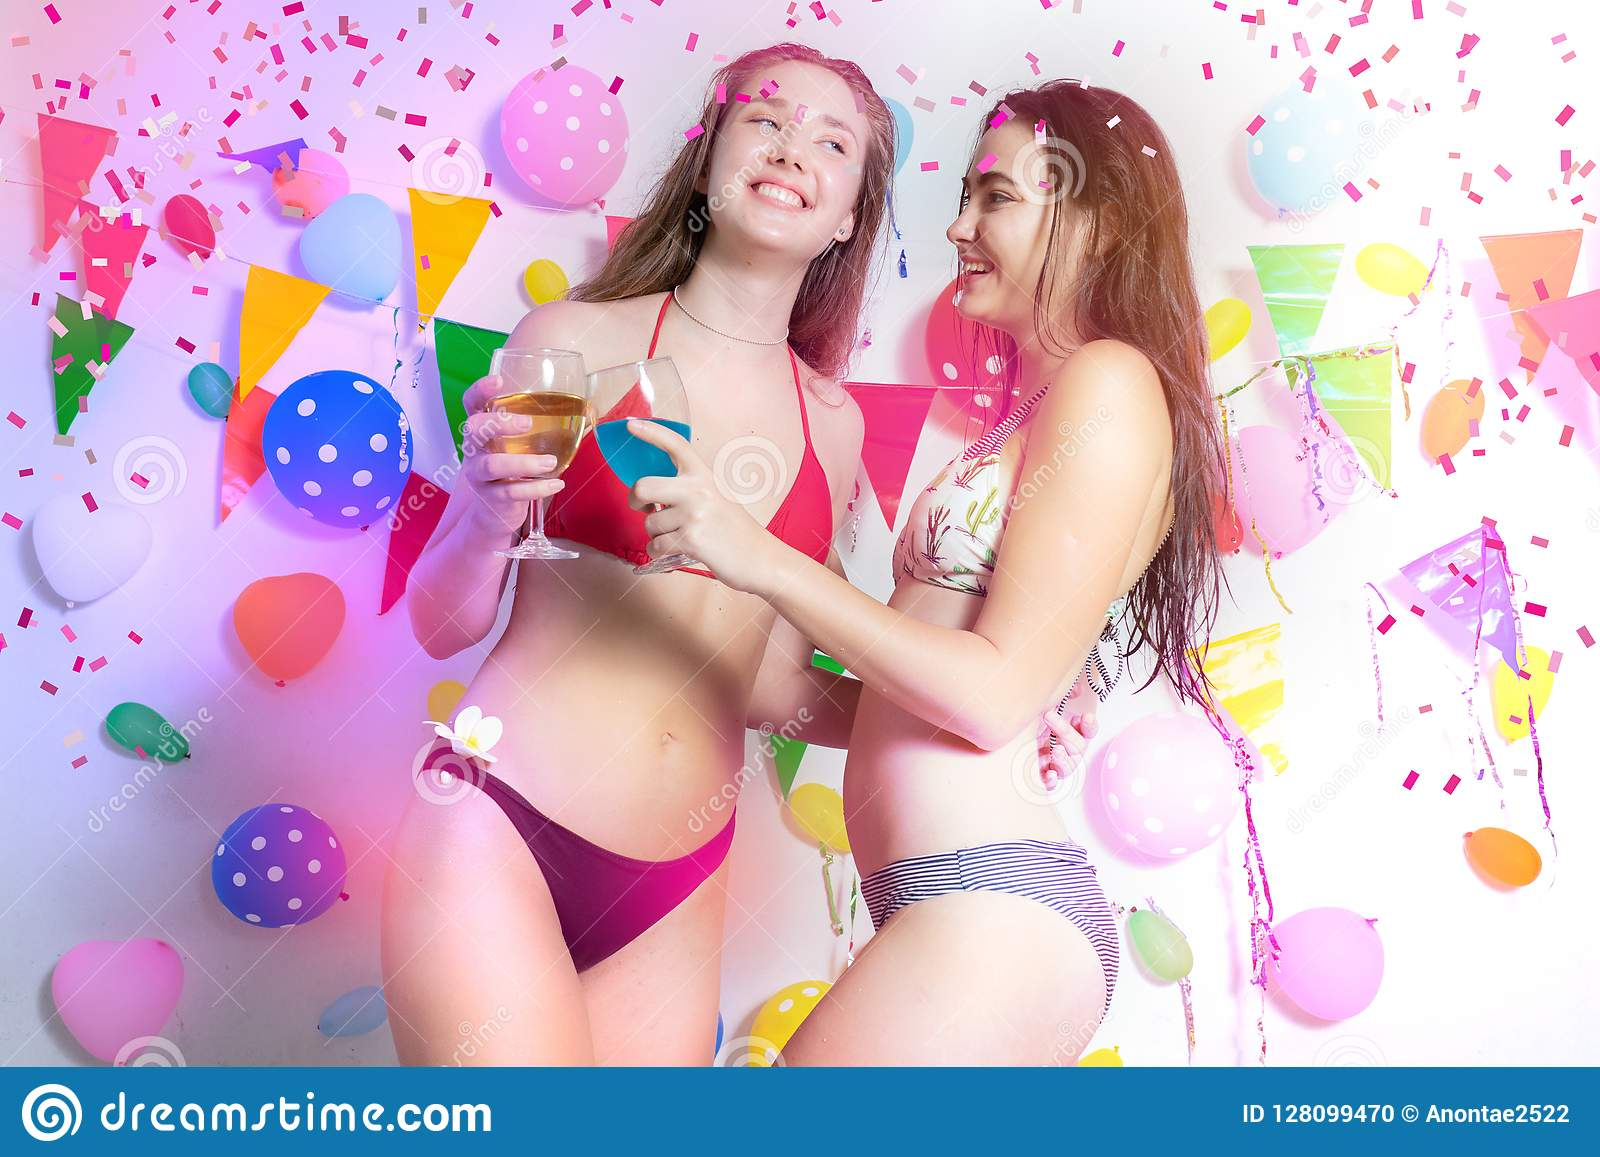 sexy girl party